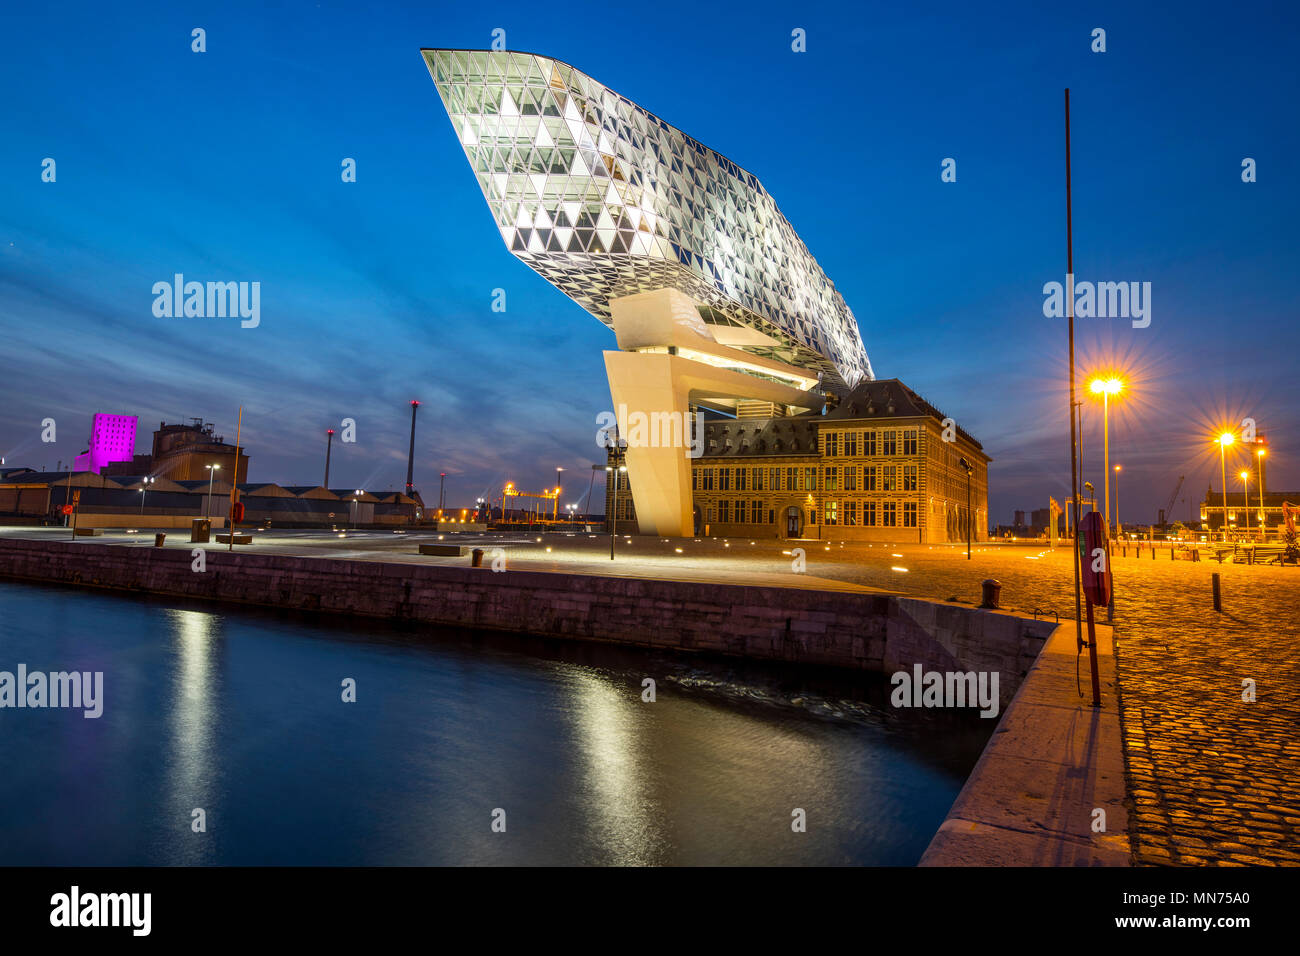 The Antwerp Port Authority building, in Antwerp, Belgium, former firemen's barracks in the harbor, renovated and fitted with a glass building, in the  - Stock Image